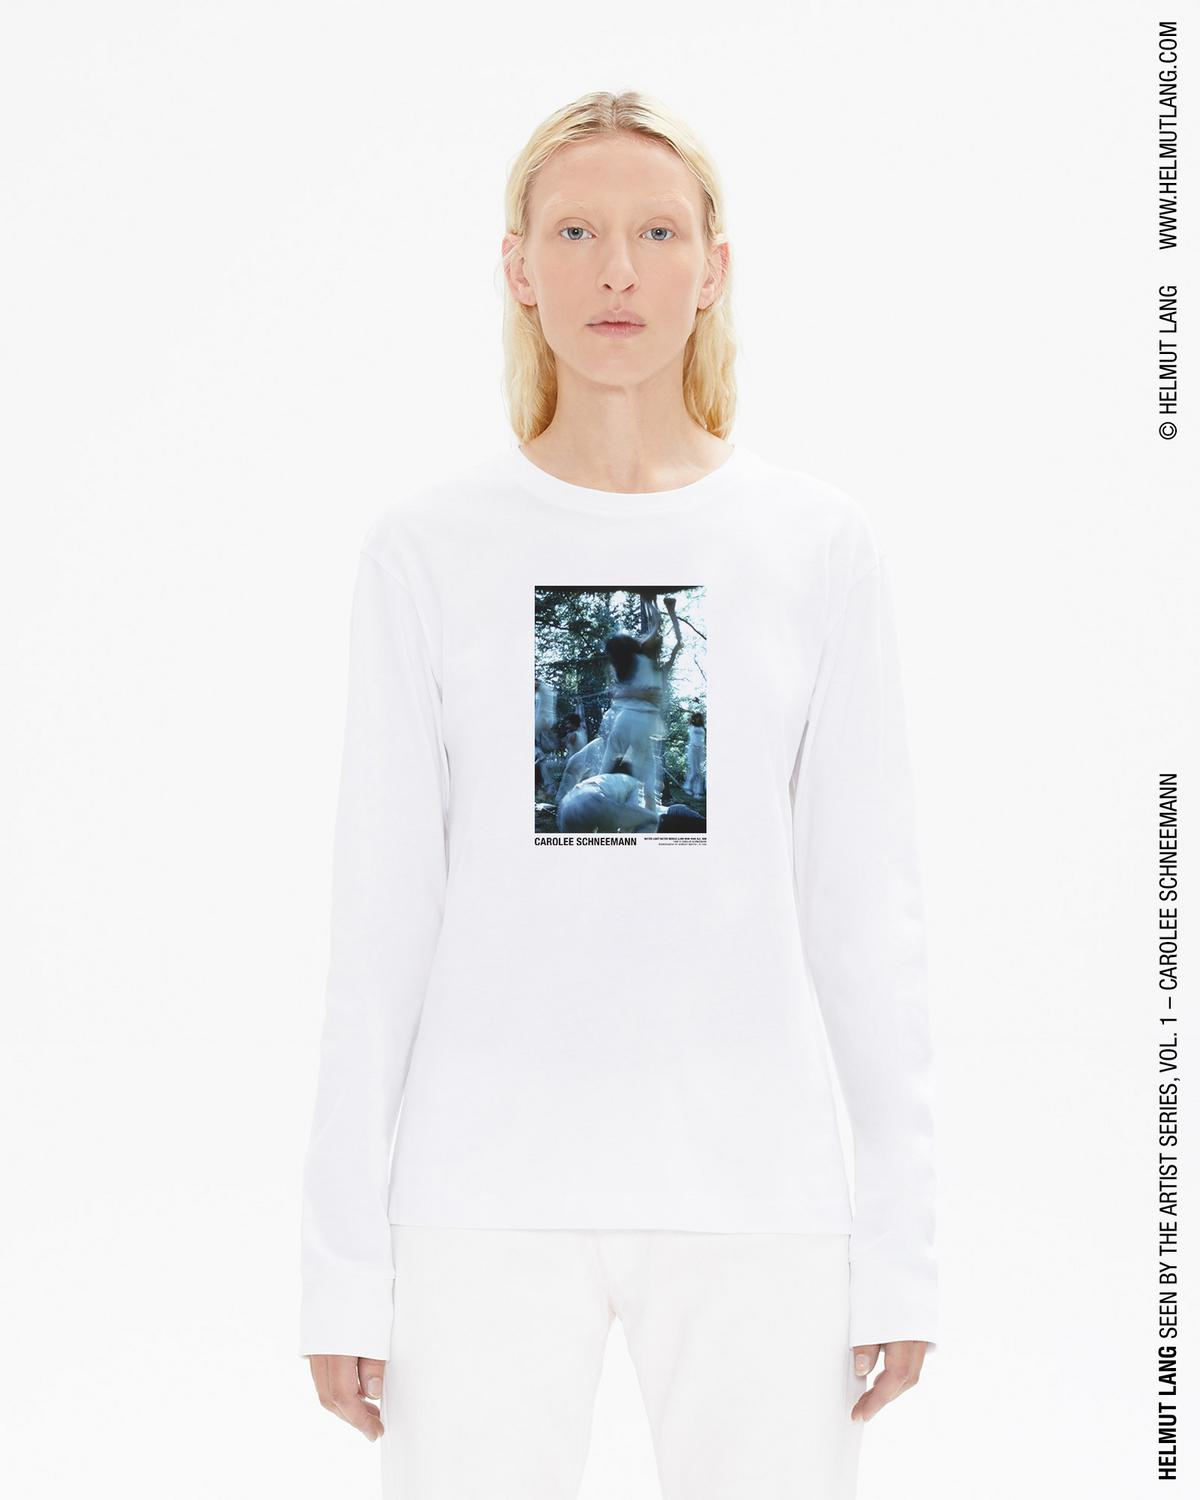 CAROLEE SCHNEEMANN EVENT LONG SLEEVE